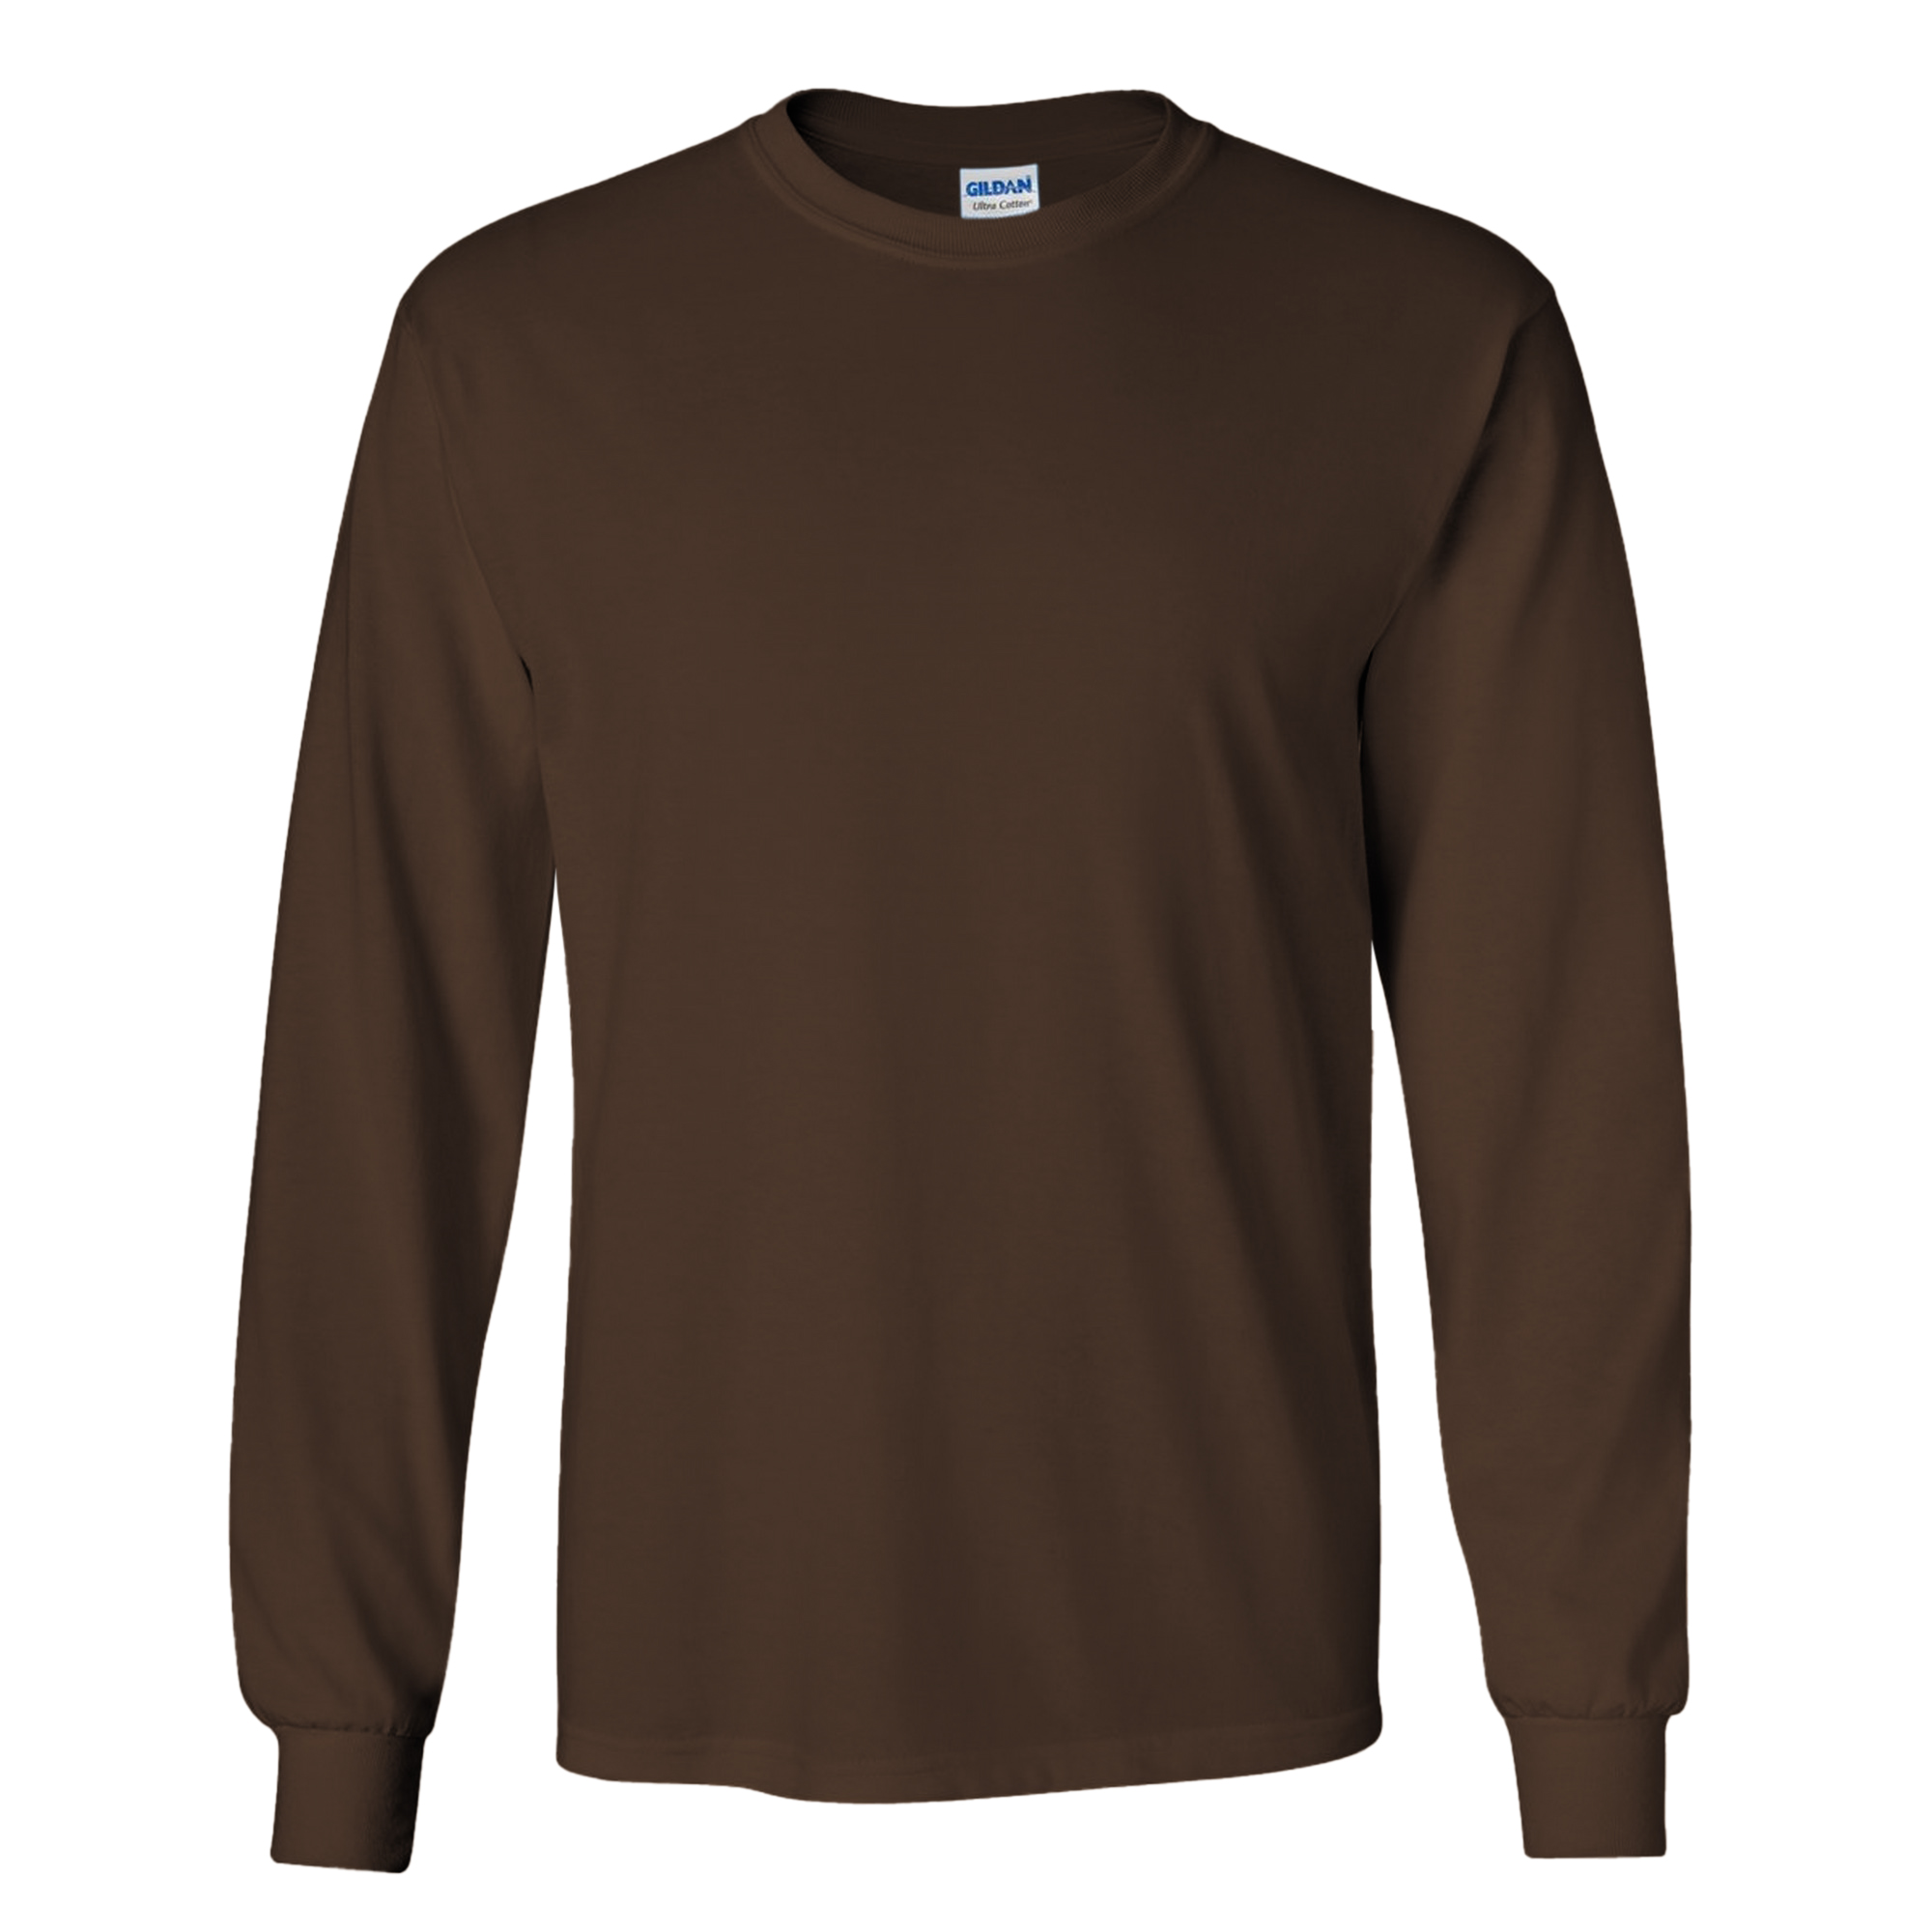 Gildan Mens Plain Crew Neck Ultra Cotton Long Sleeve T